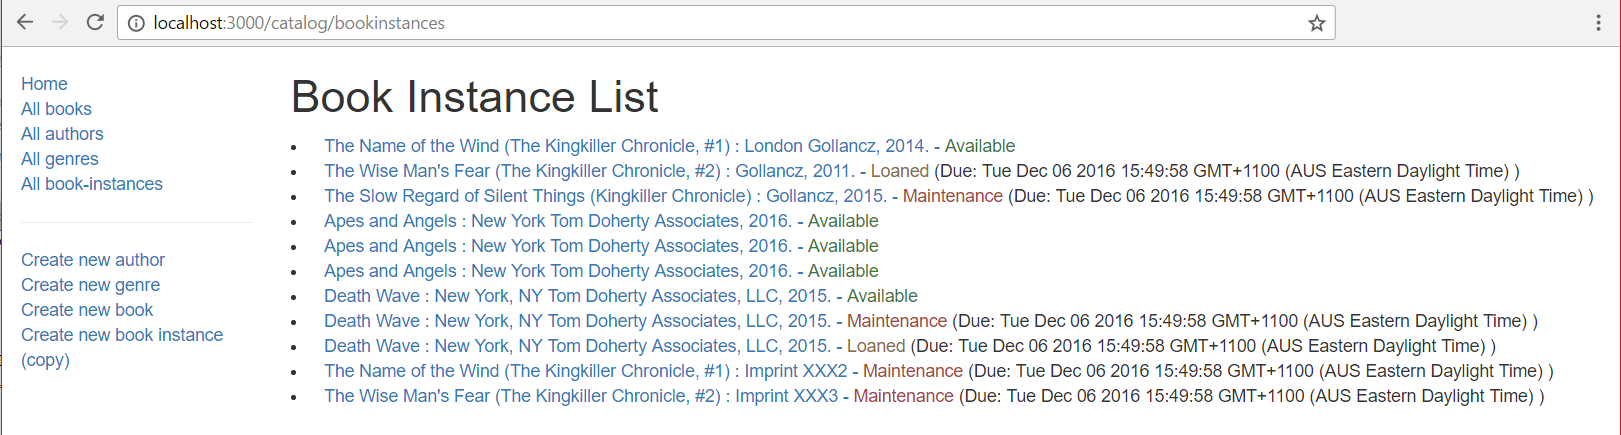 BookInstance List Page - Express Local Library site